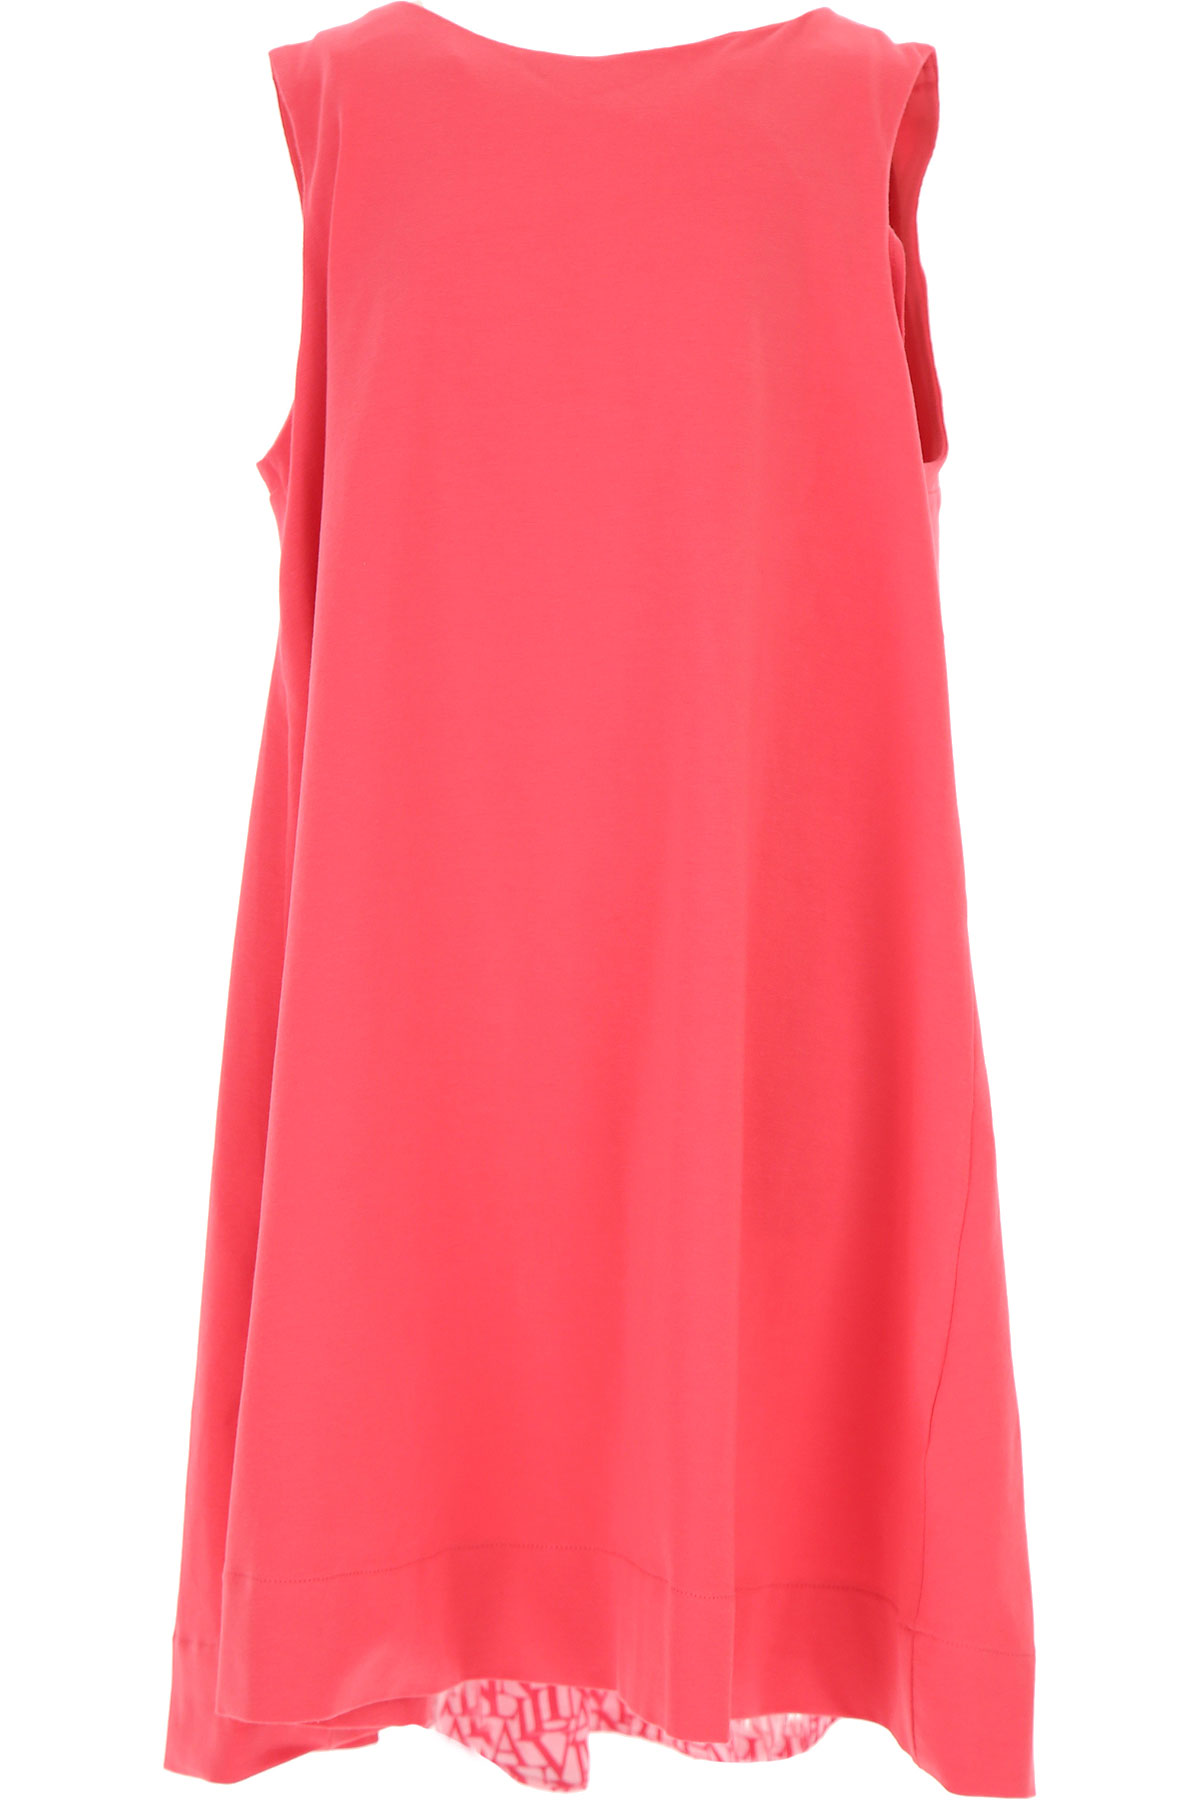 Lanvin Girls Dress On Sale in Outlet, Red, Cotton, 2019, 10Y 12Y 8Y